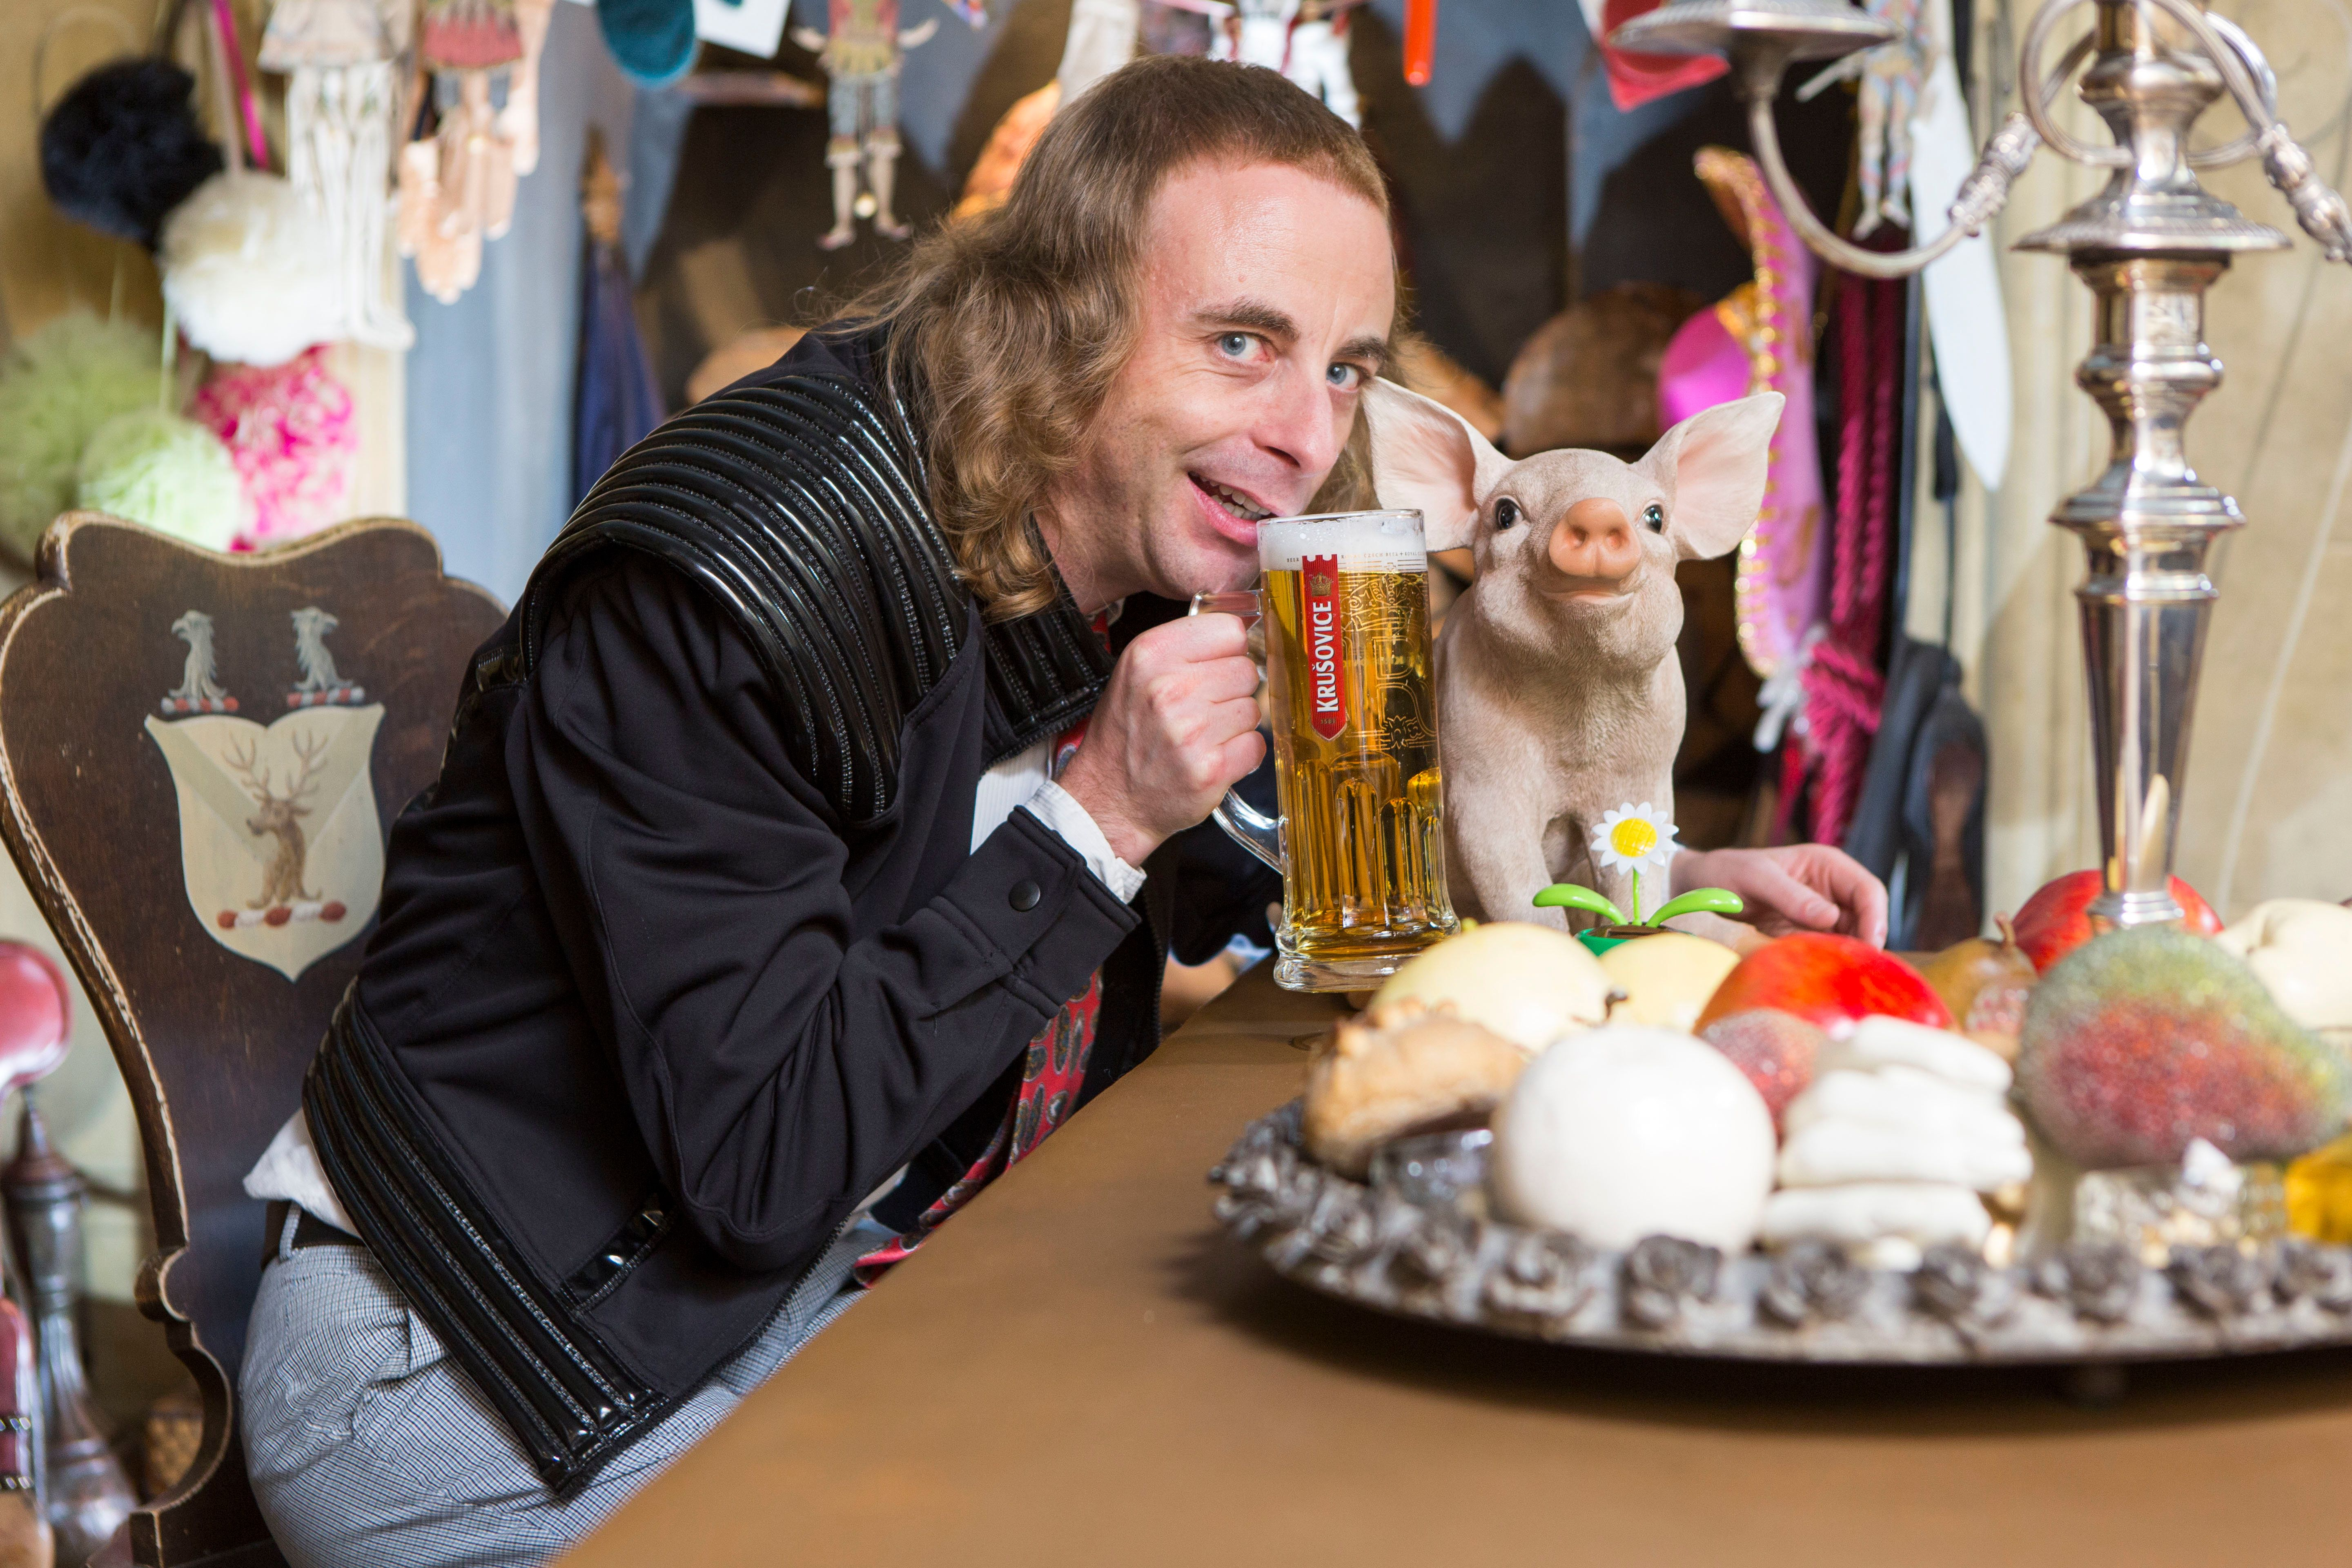 Watch Paul Foot's 'The Curious Curator' Live On HuffPost UK Comedy's Facebook